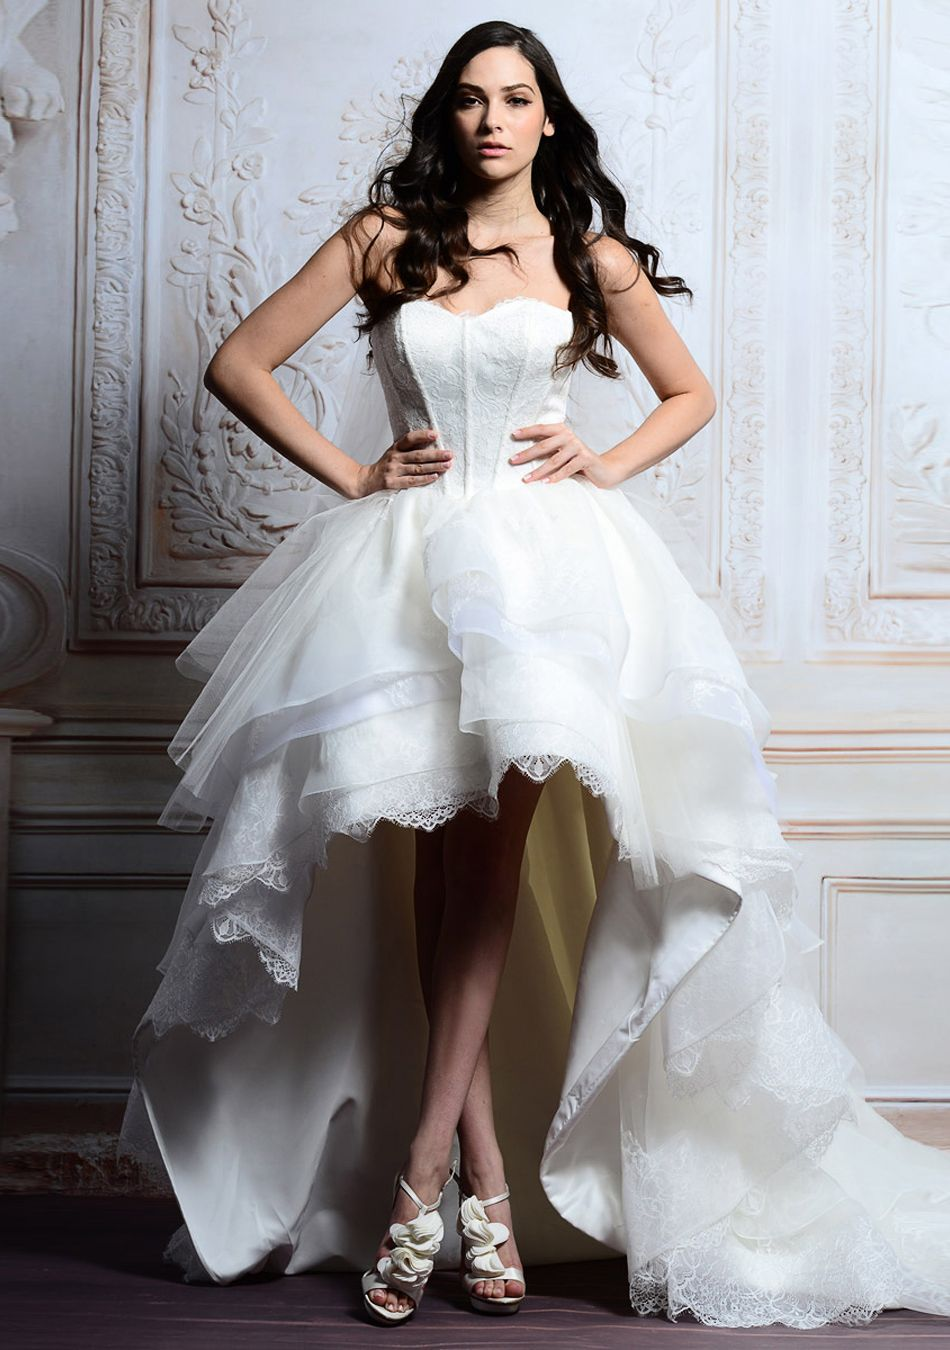 Short white wedding dresses for wedding party in summer wedding short white wedding dresses for wedding party in summer wedding sunny junglespirit Image collections